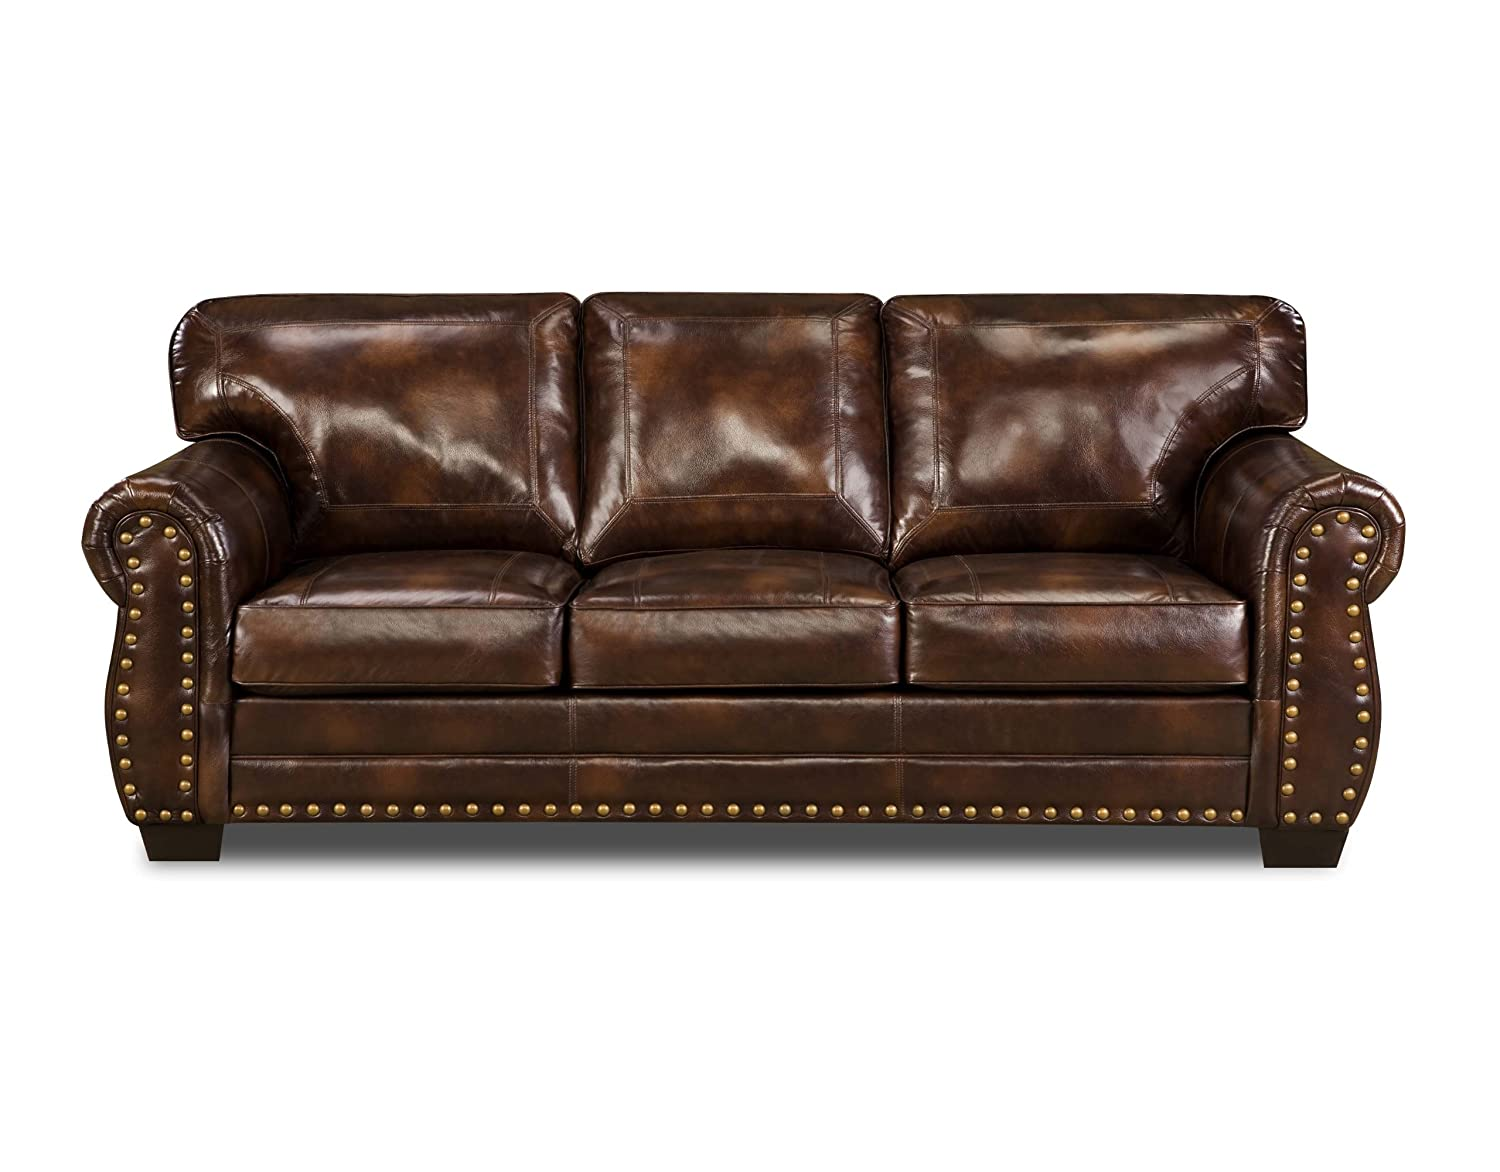 Simmons Upholstery 8369-DN Panama Espresso Bonded Leather Sofa